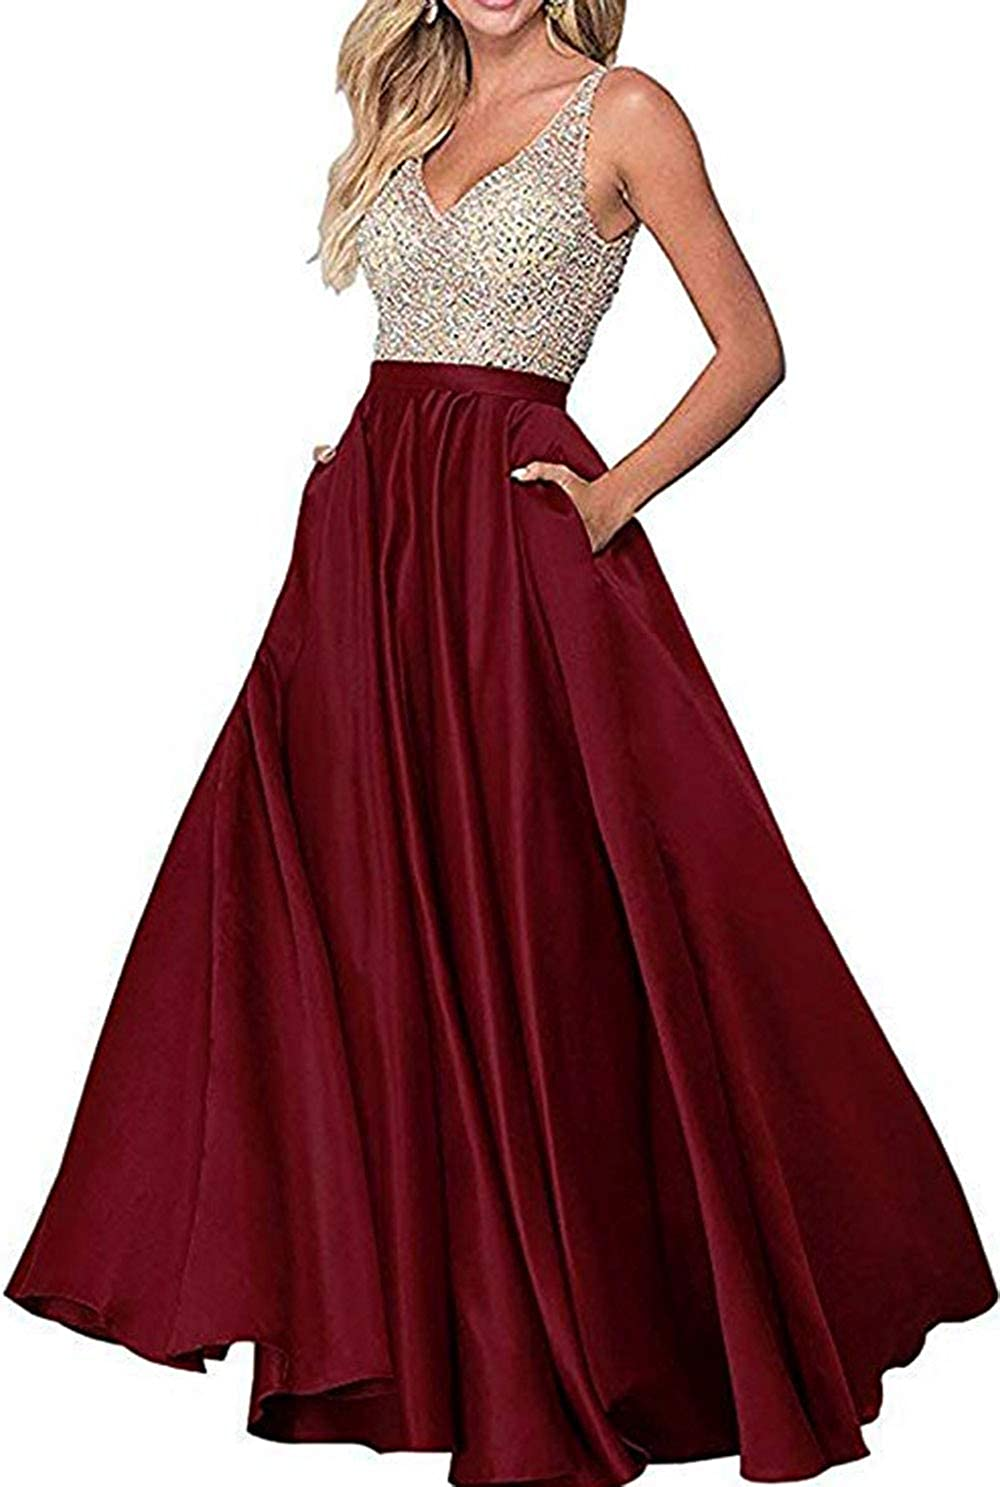 Burgundy Rmaytiked Womens VNeck Beaded Bodice Long Prom Dresses A Line Satin Formal Evening Ball Gowns with Pockets 2019 New